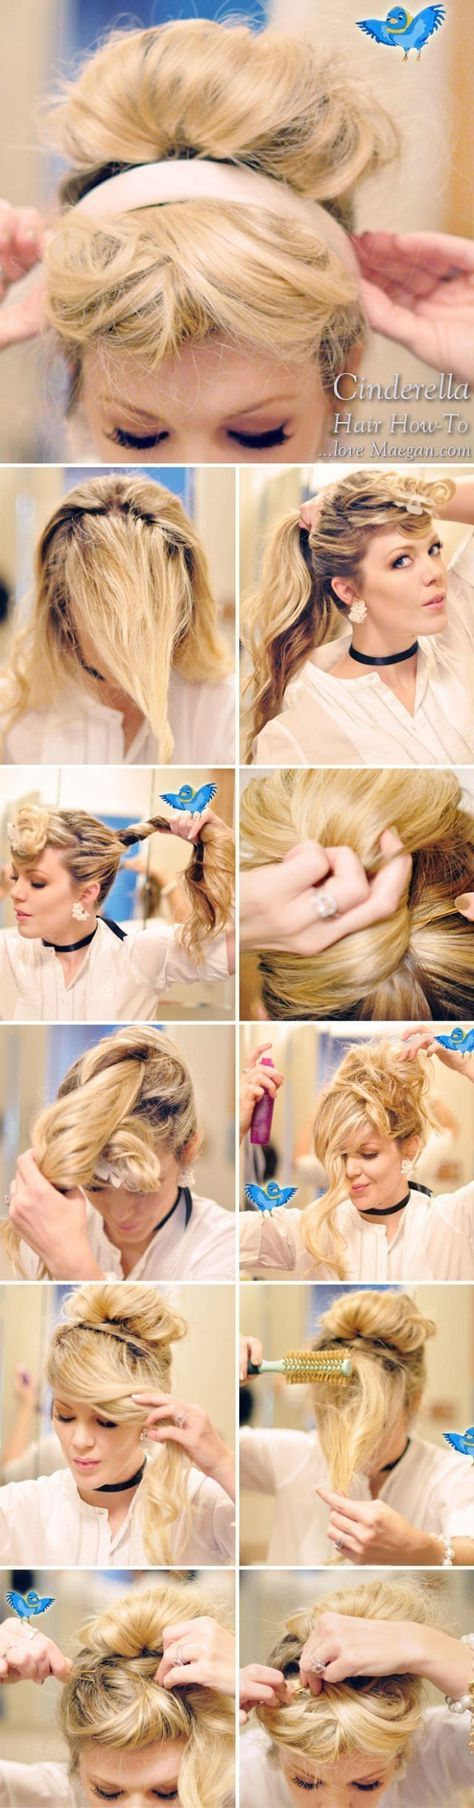 6 Disney Princess Hairstyles